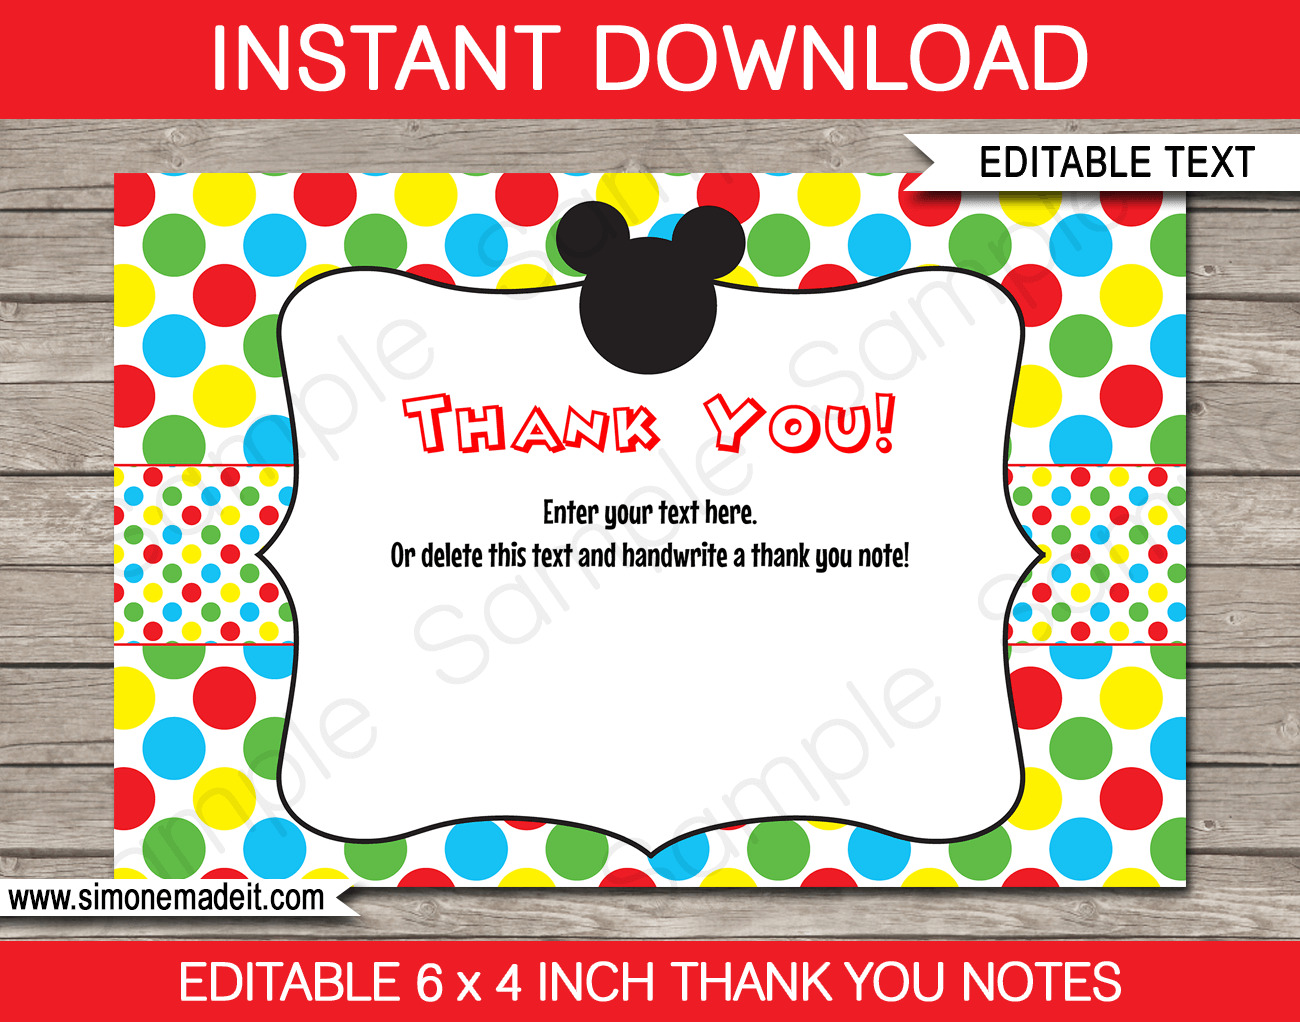 Printable Mickey Mouse Thank You Card Template - Favor Note Tags - Birthday Party theme - Editable Text - Instant Download via simonemadeit.com